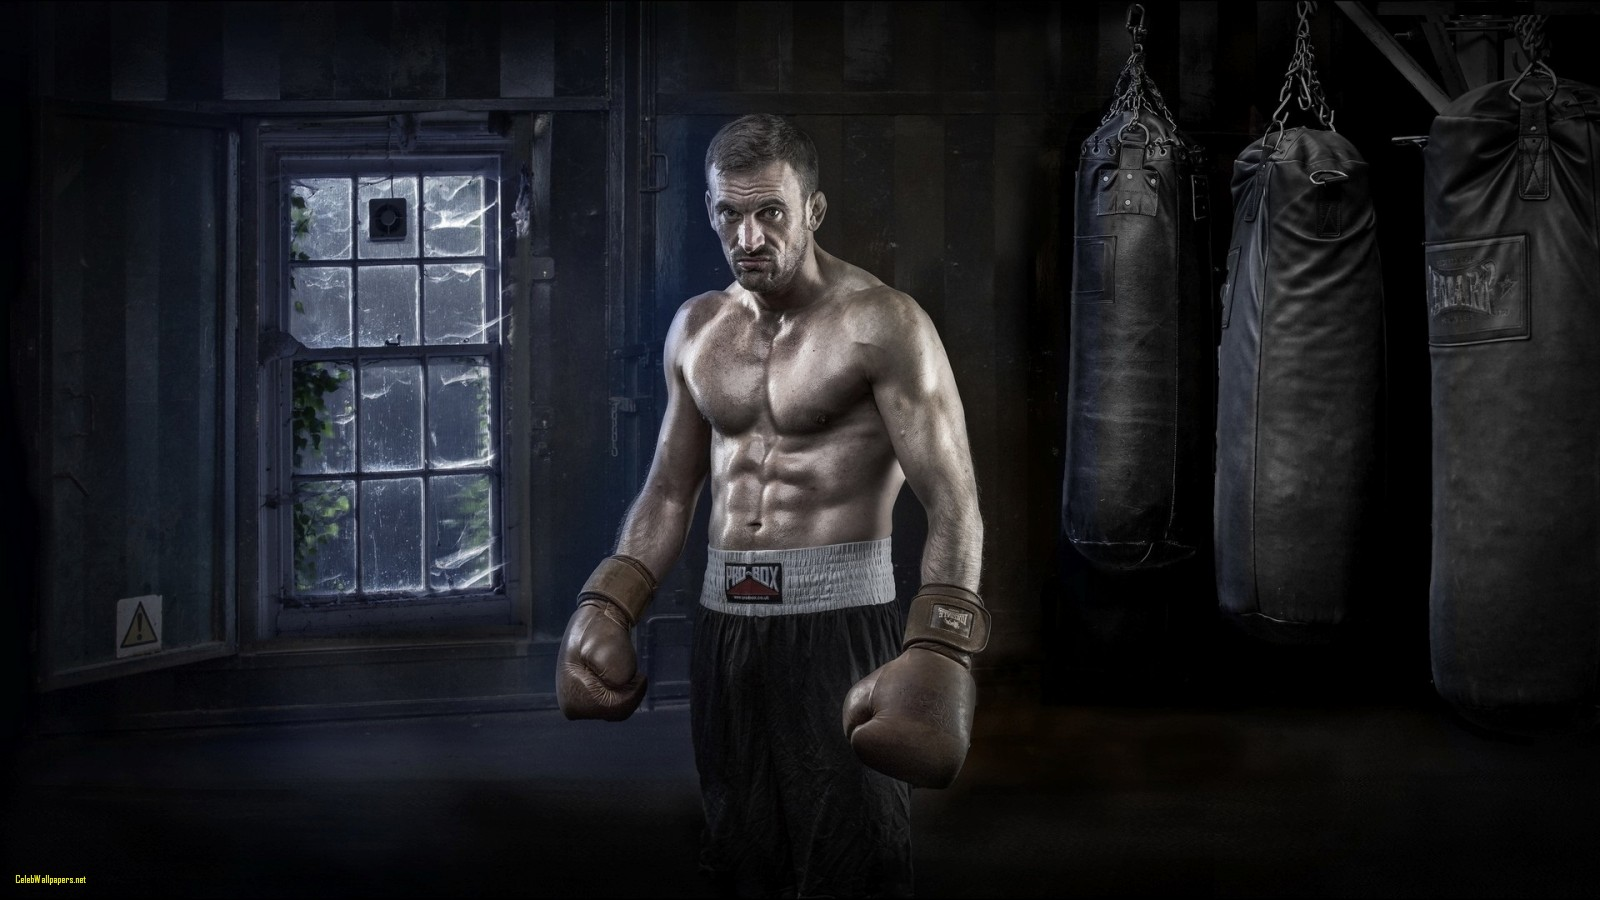 1600x900 - Boxing Wallpapers 1